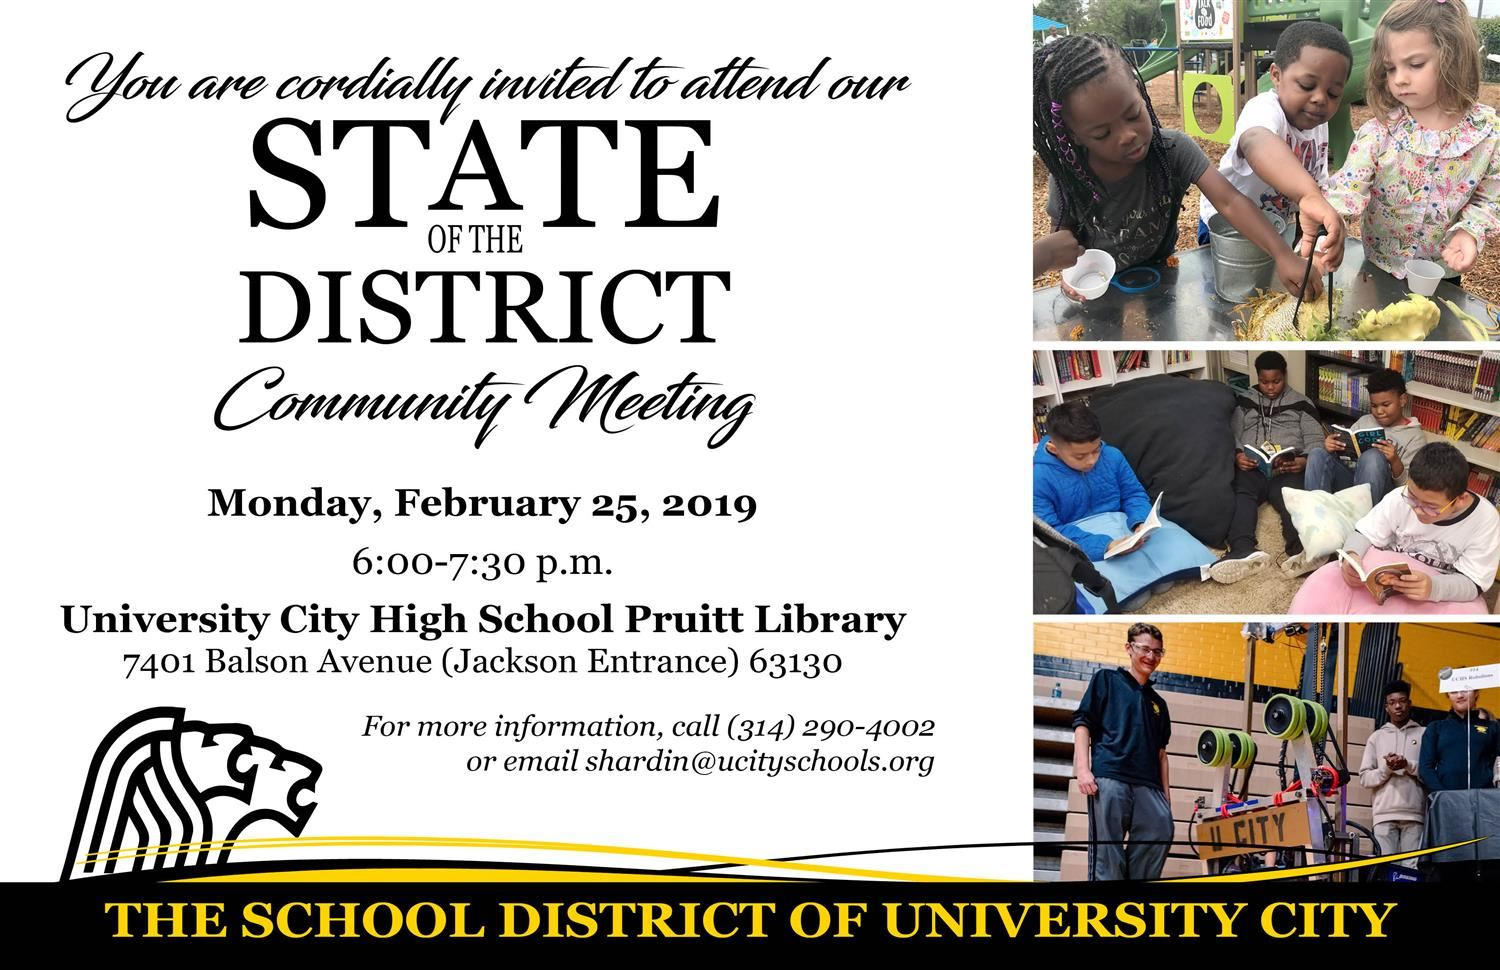 State of the District - Feb. 25, 2019